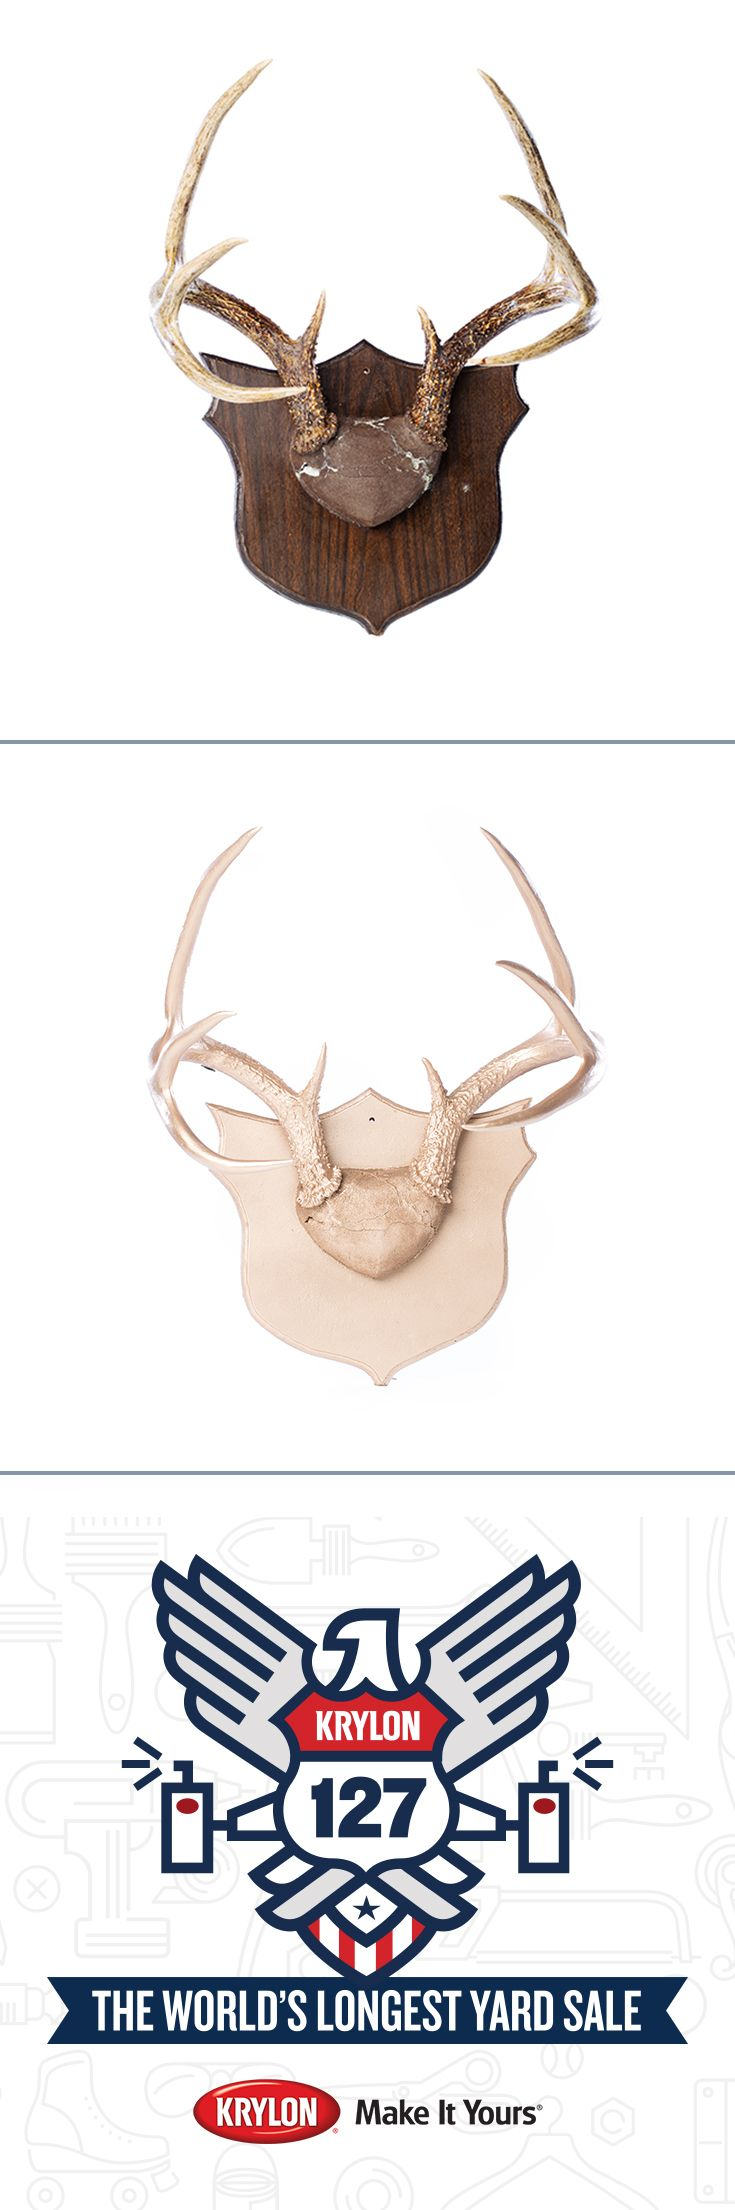 Looking For A Way To Add Some Metallic Glamour To Your Home Décor? Spruce  Up A Set Of Mounted Deer Antlers With A Coat Of Krylon Metallic Gold.